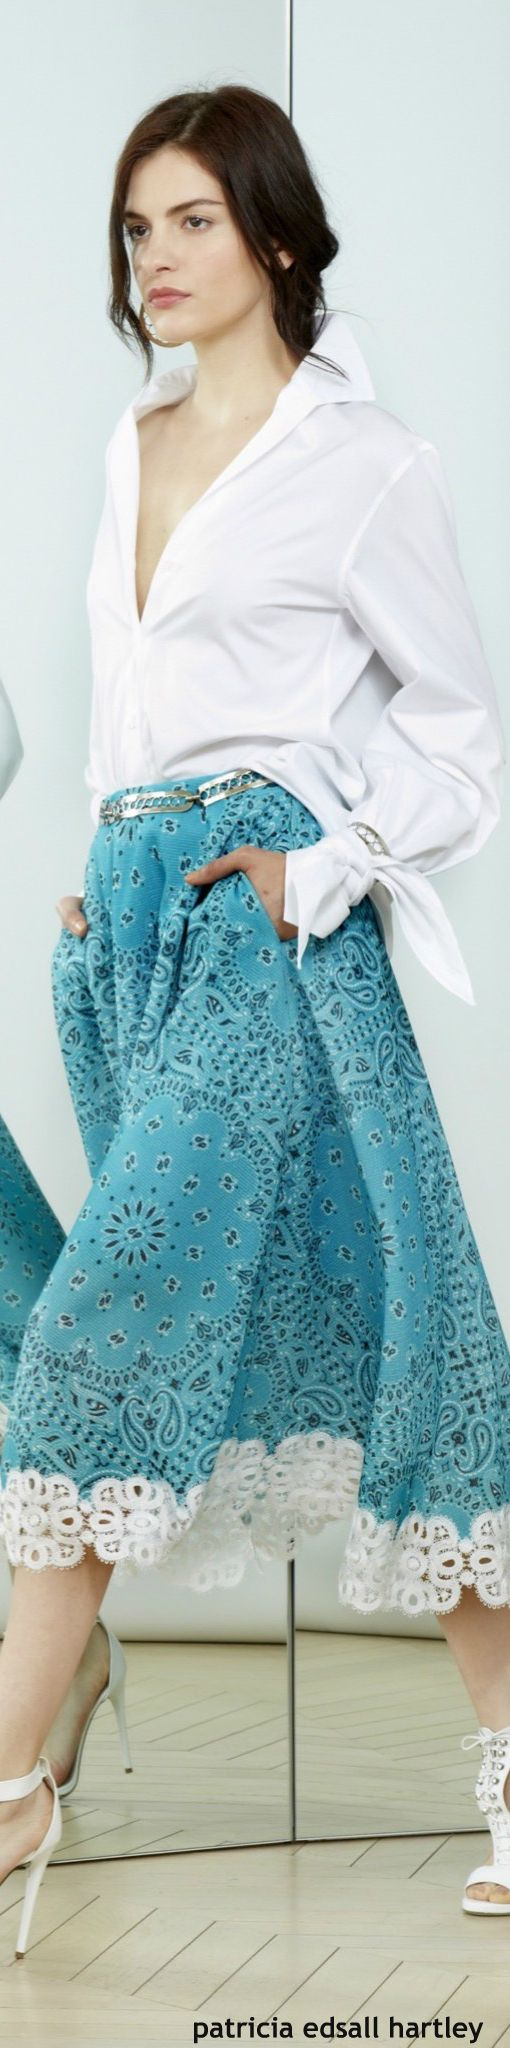 Alexis Mabille Resort 2016 I always love teal - this lacy skirt is so cute, with pockets too!